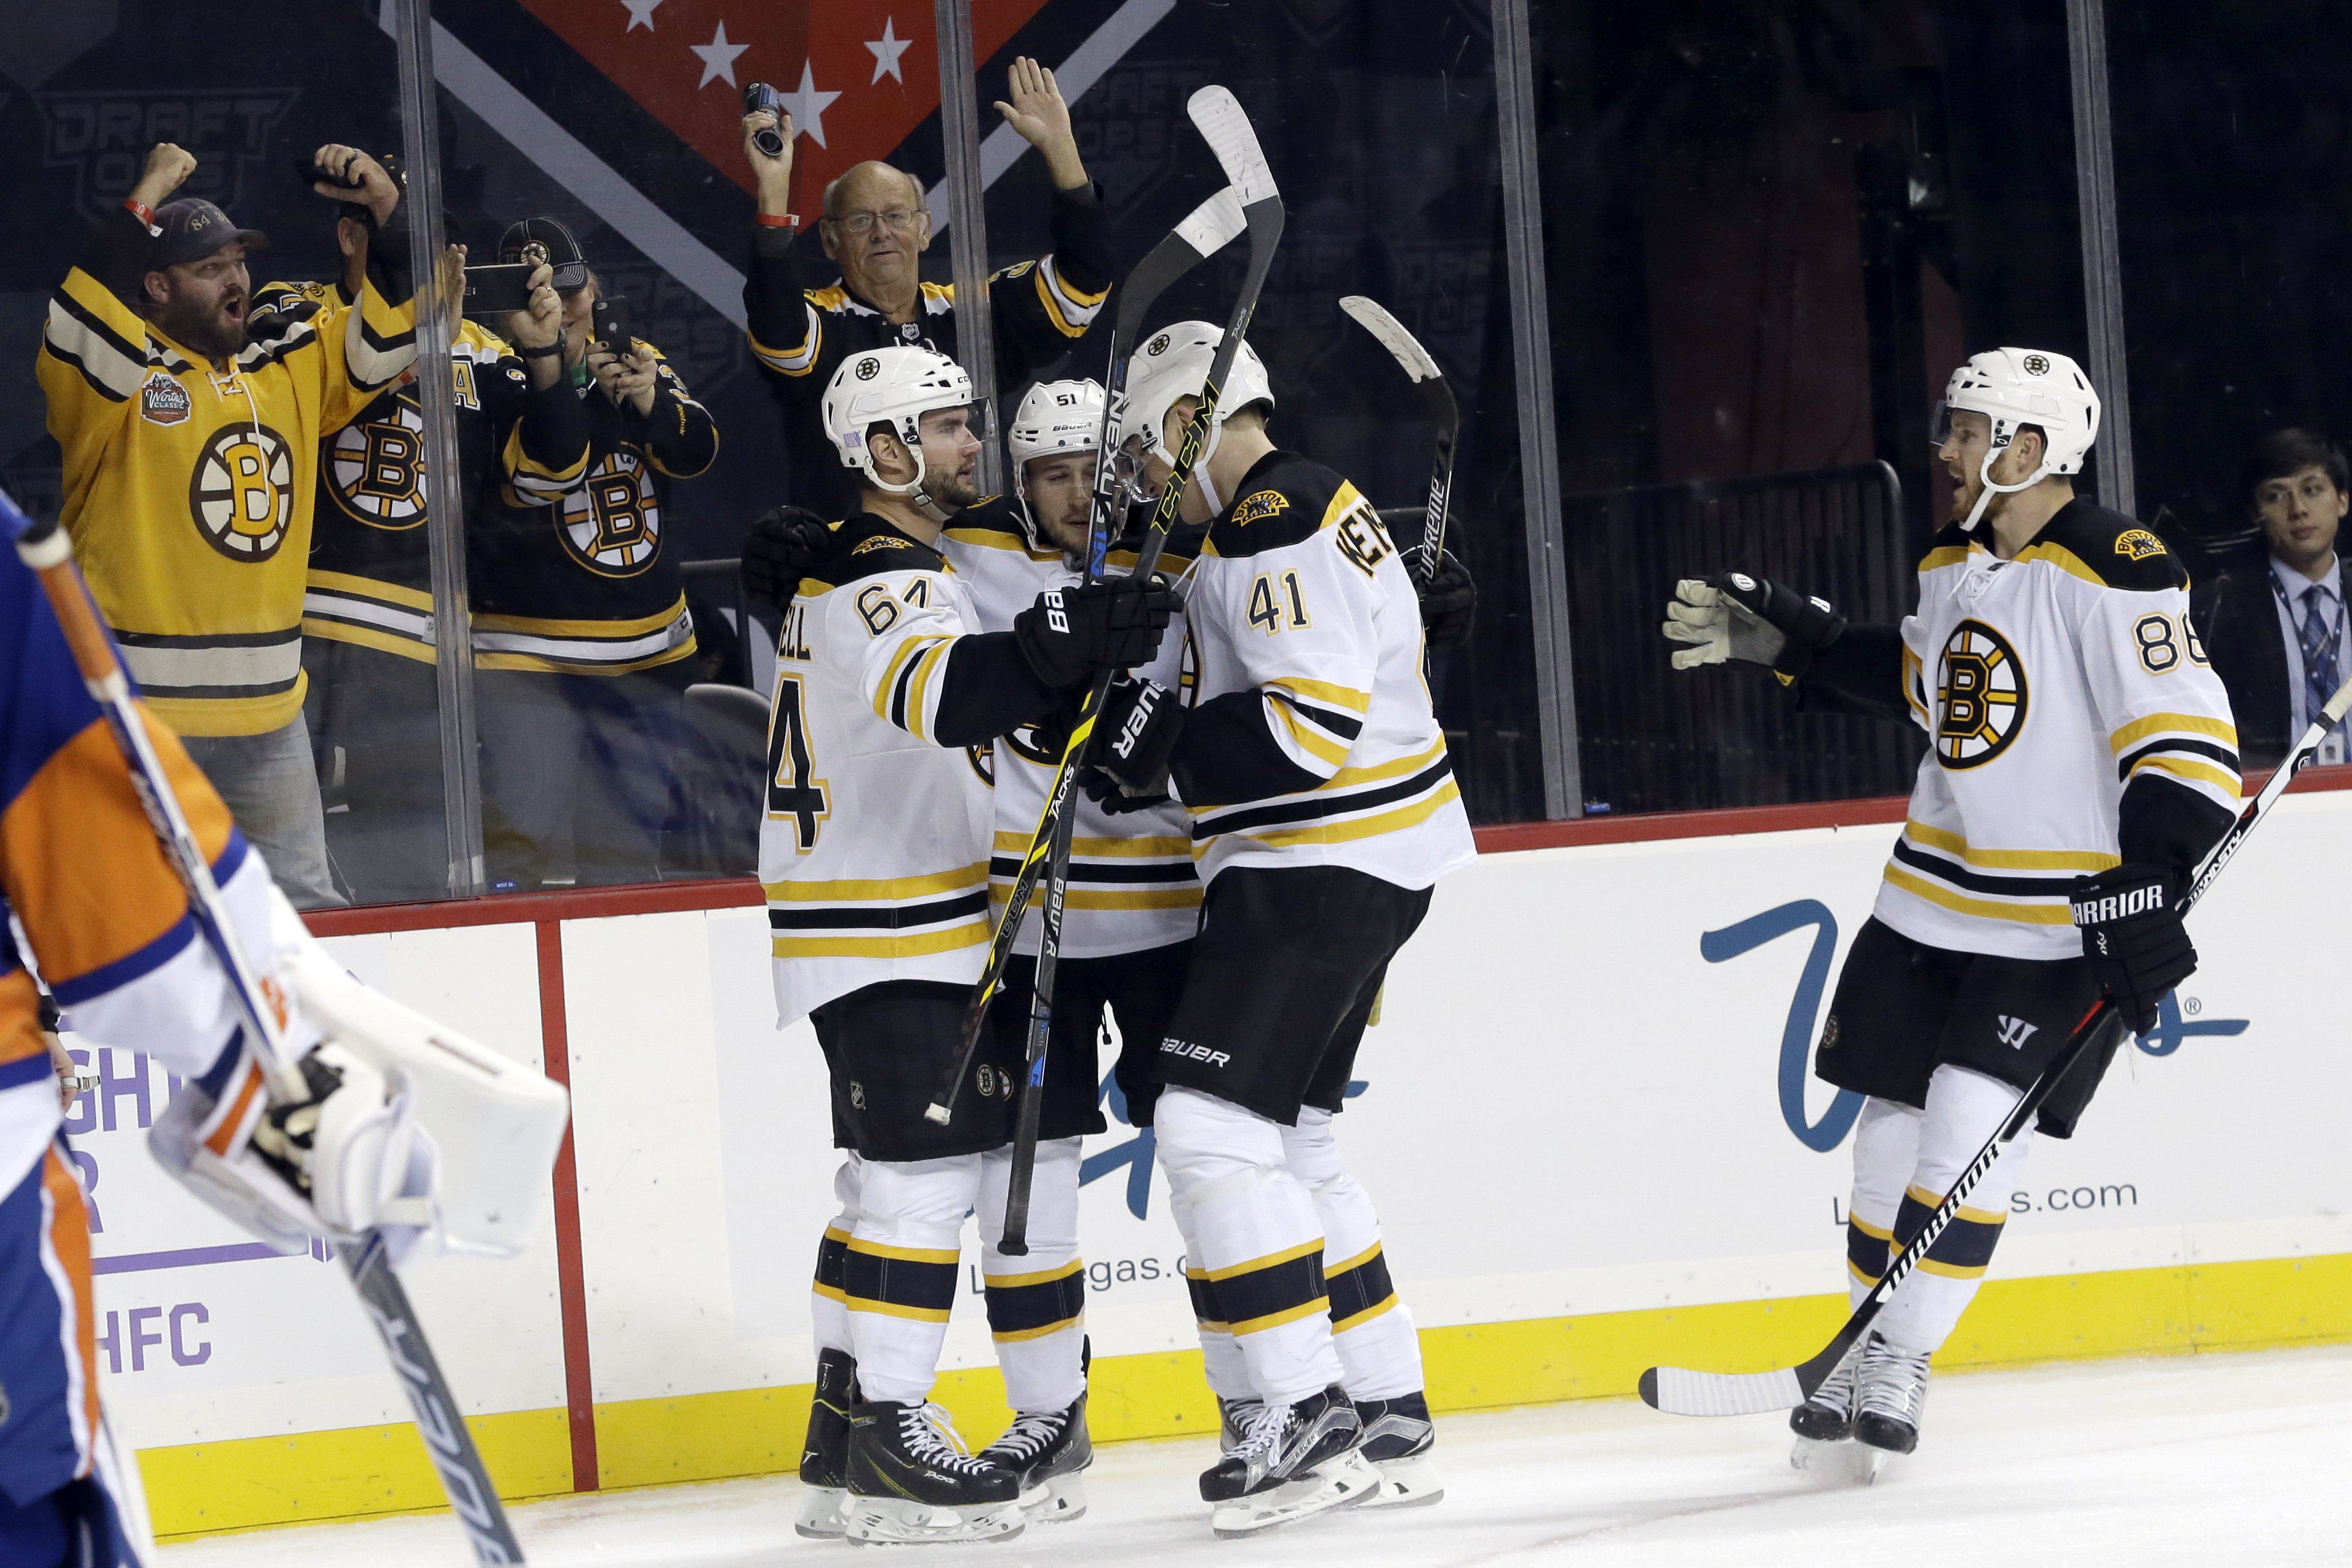 Boston Bruins center Ryan Spooner (51) celebrates with teammates after scoring during the third period of an NHL hockey game against the New York Islanders, Friday, Oct. 23, 2015, in New York. The Bruins won 5-3. (AP Photo/Mary Altaffer)